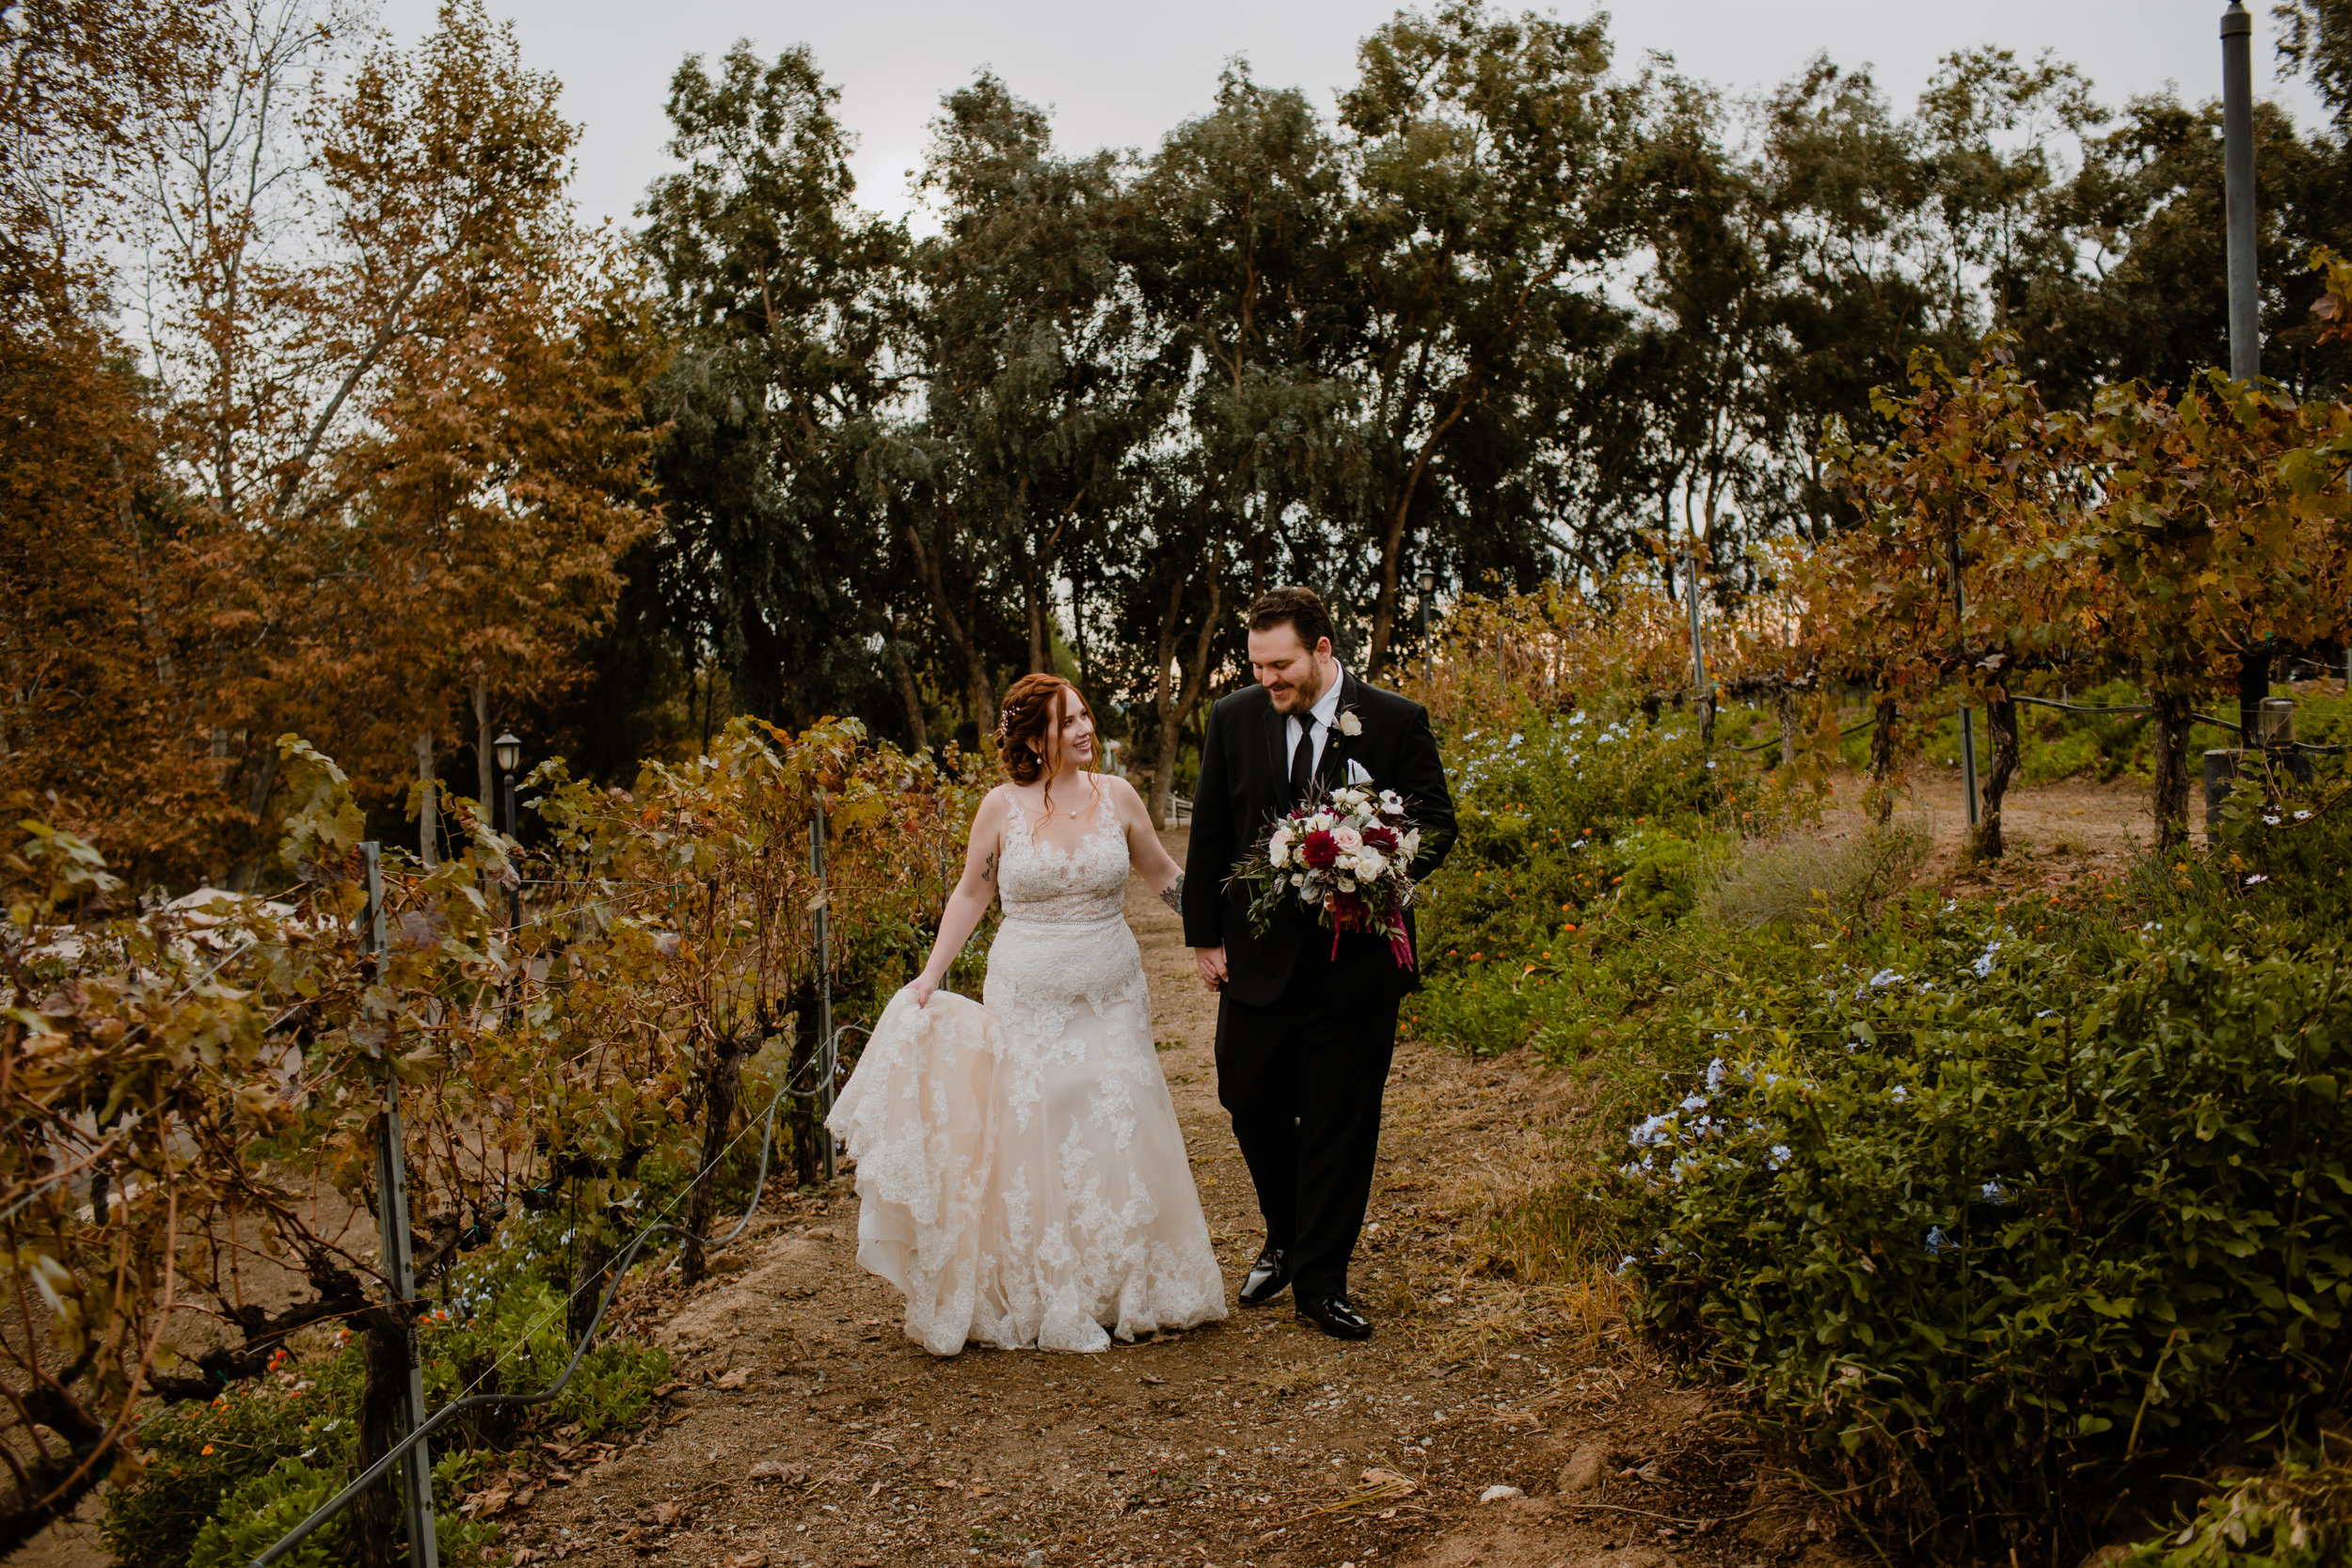 Lake Oak Meadows Temecula CA Wedding - Eve Rox Photography-94.jpg